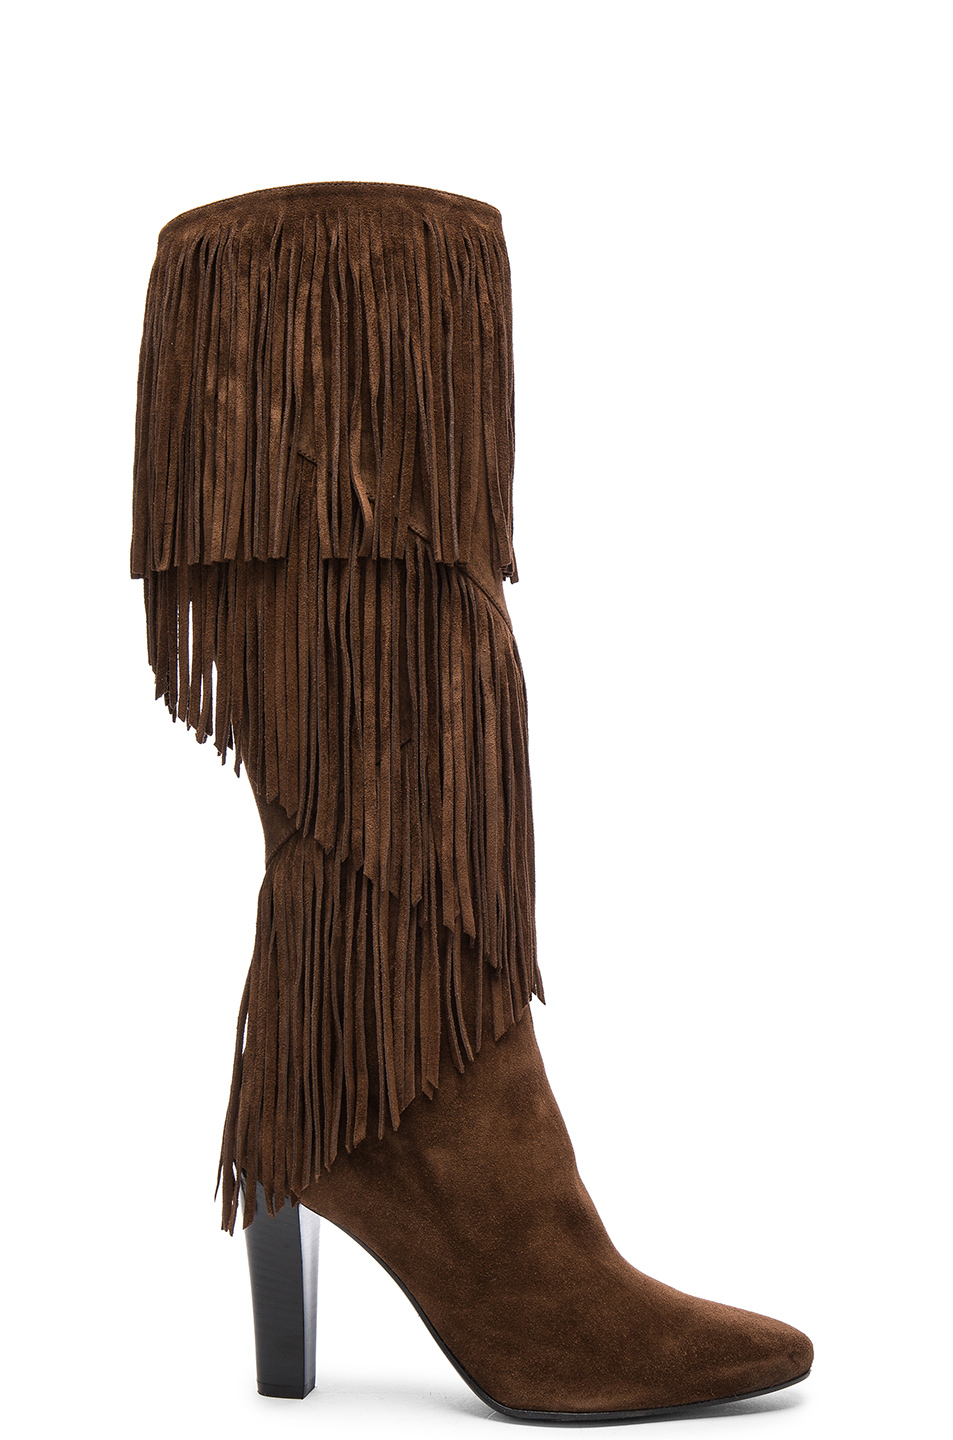 Suede Lily Fringe Boots, Coffy